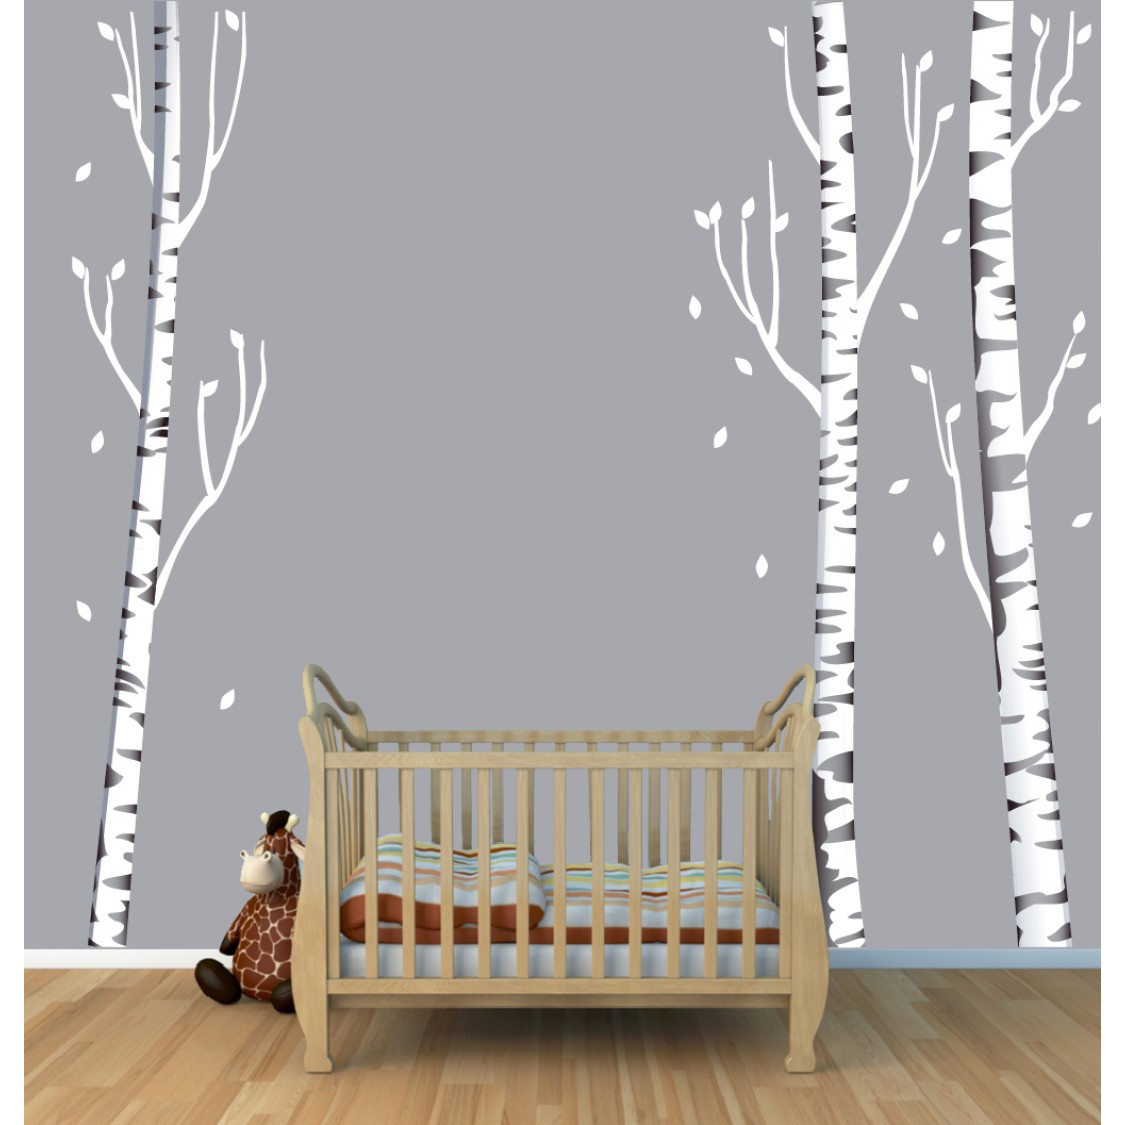 Wall art with birch tree wall decals for kids rooms tree wall art with birch tree wall decals for kids rooms amipublicfo Choice Image